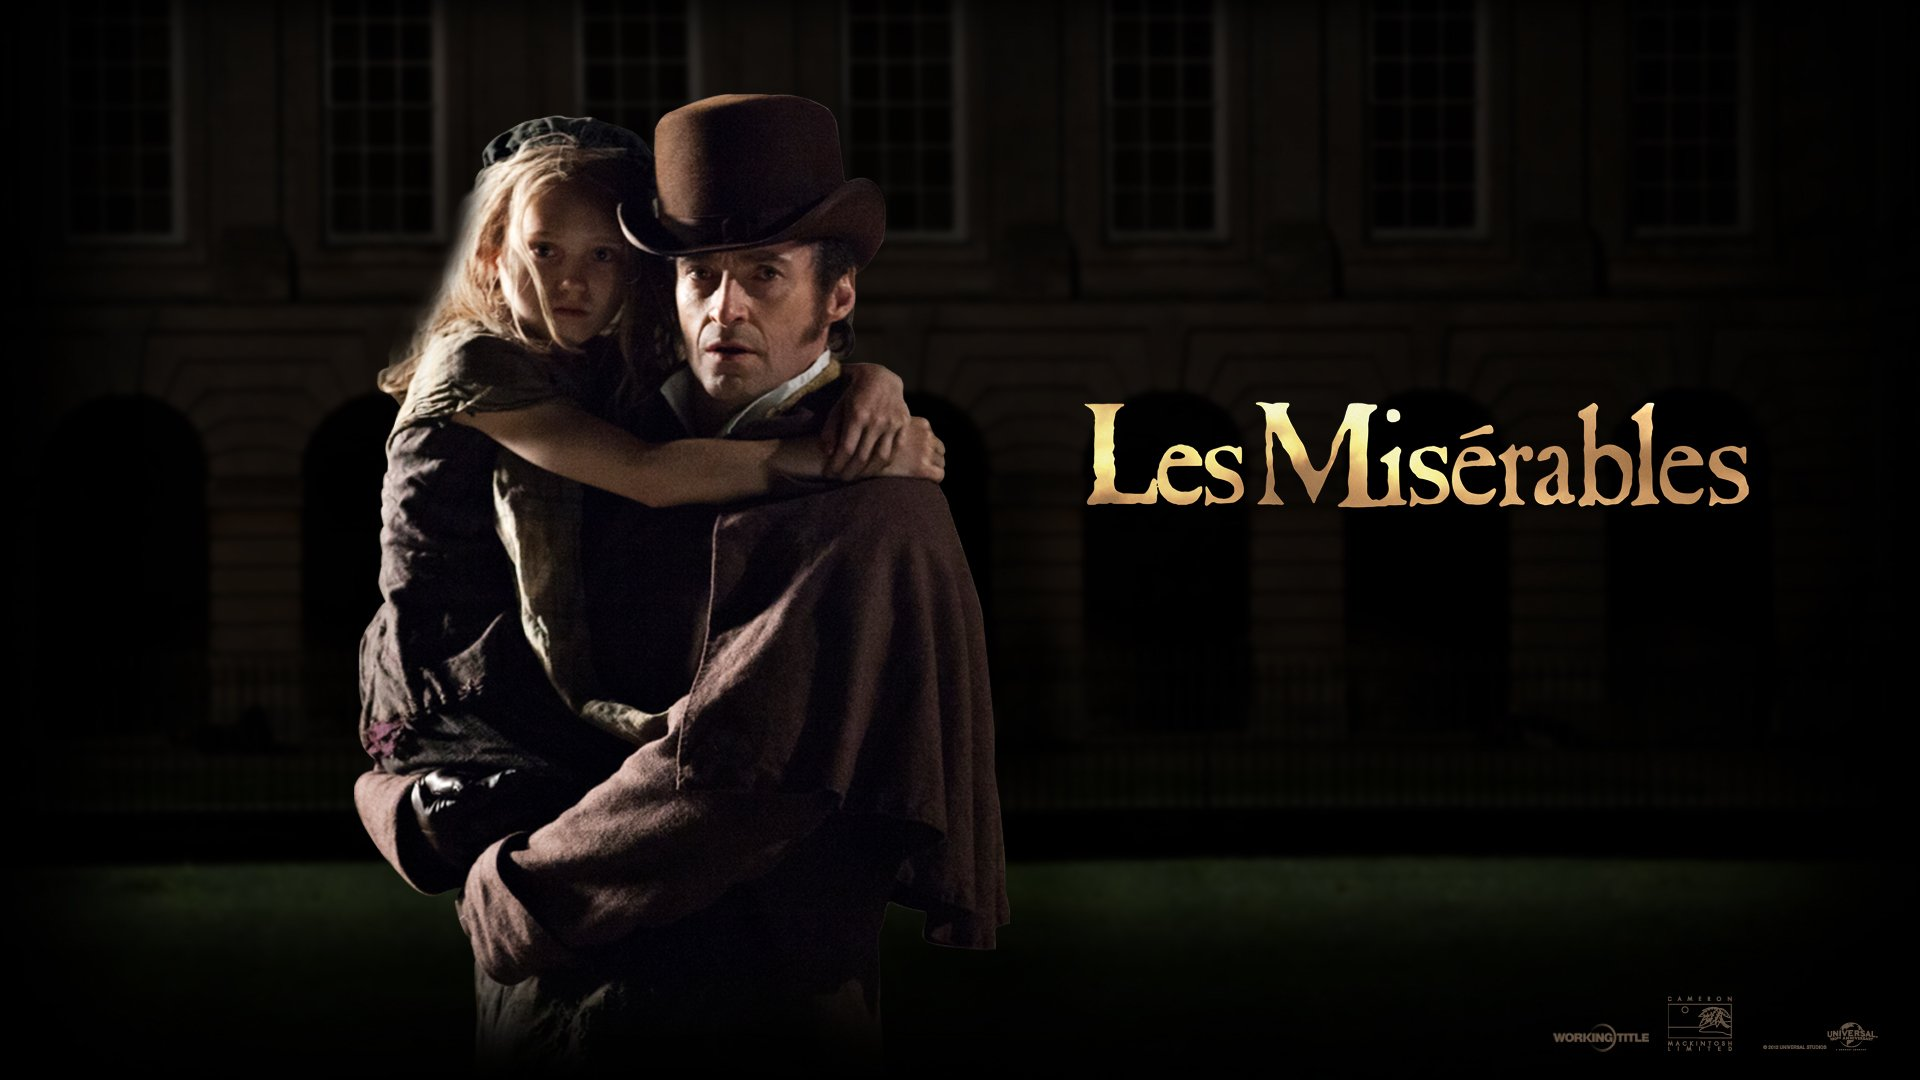 17 Les Miserables 2012 Hd Wallpapers Background Images Wallpaper Abyss